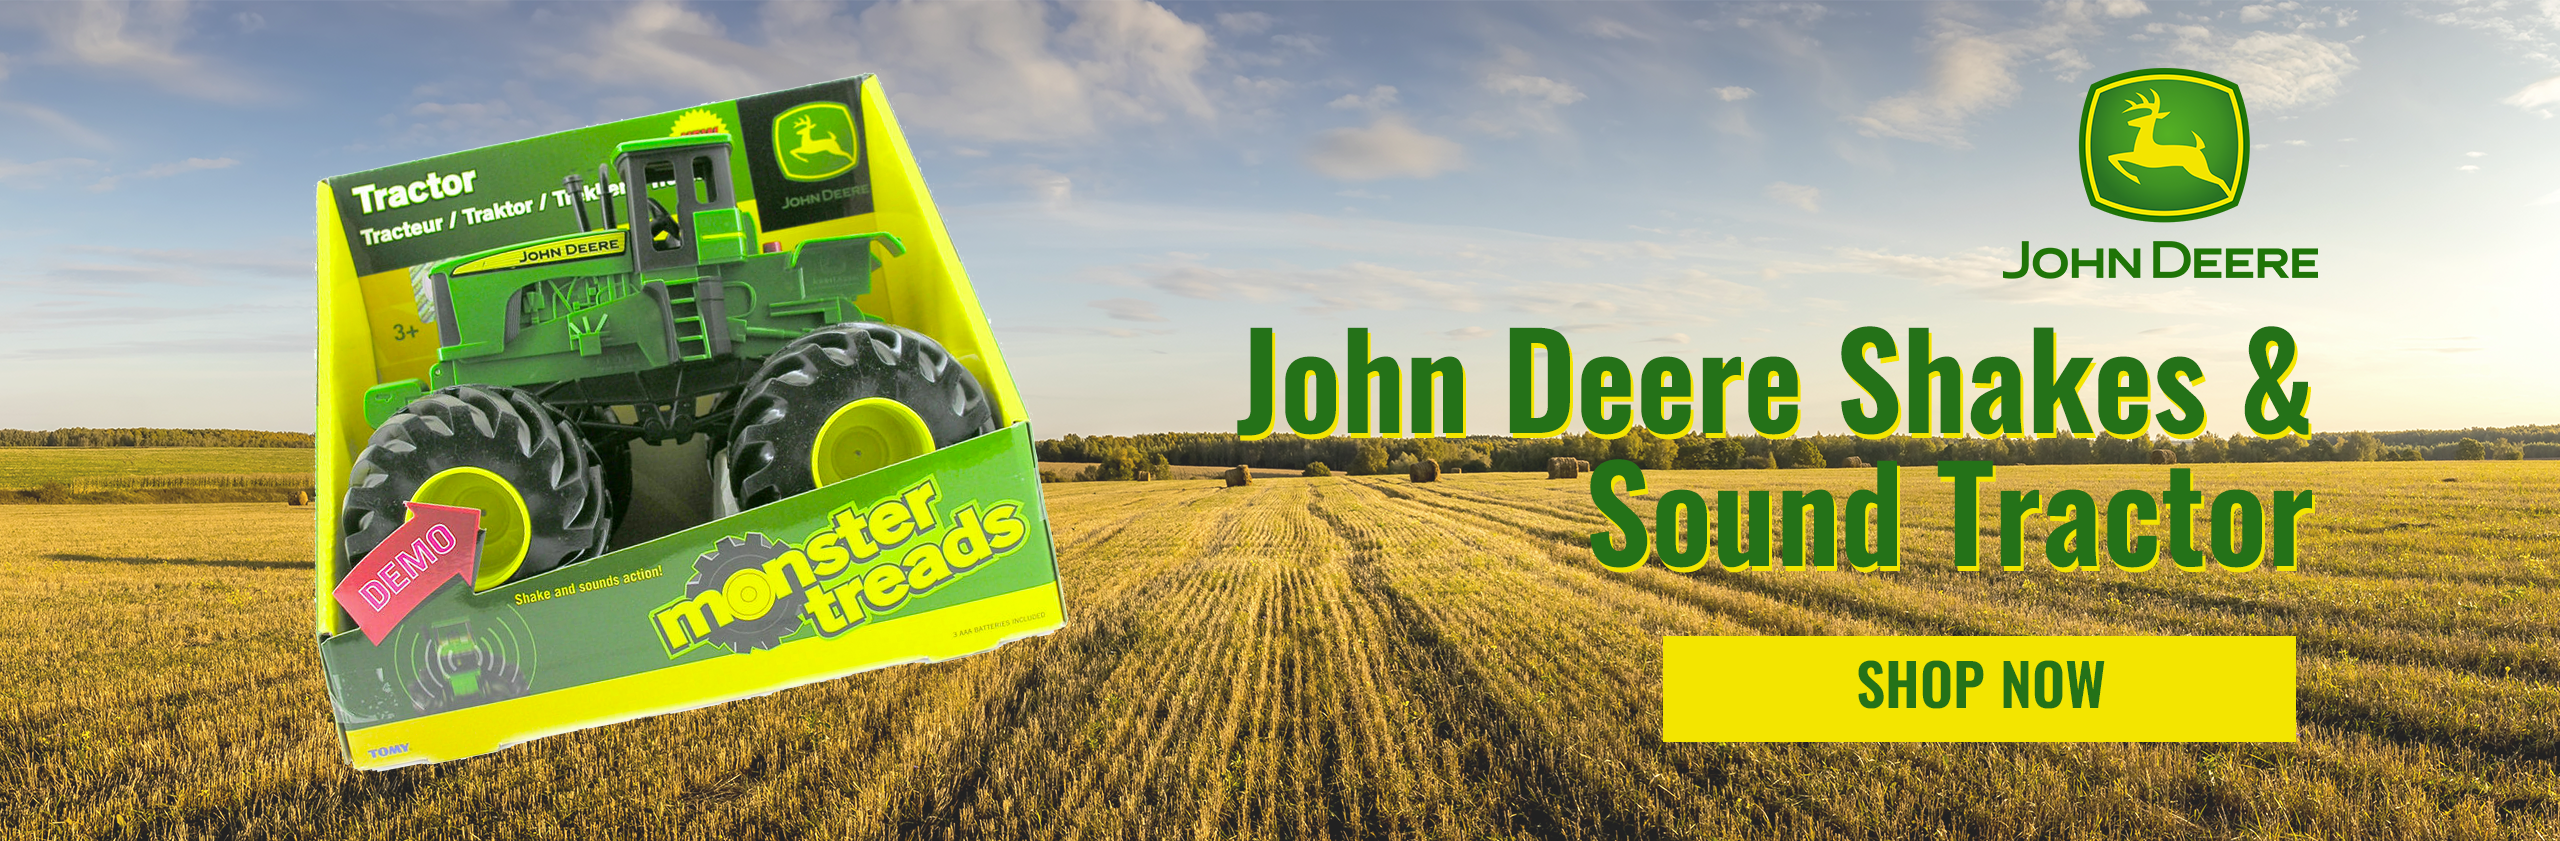 John Deere Shakes & Sound Tractor Promotion